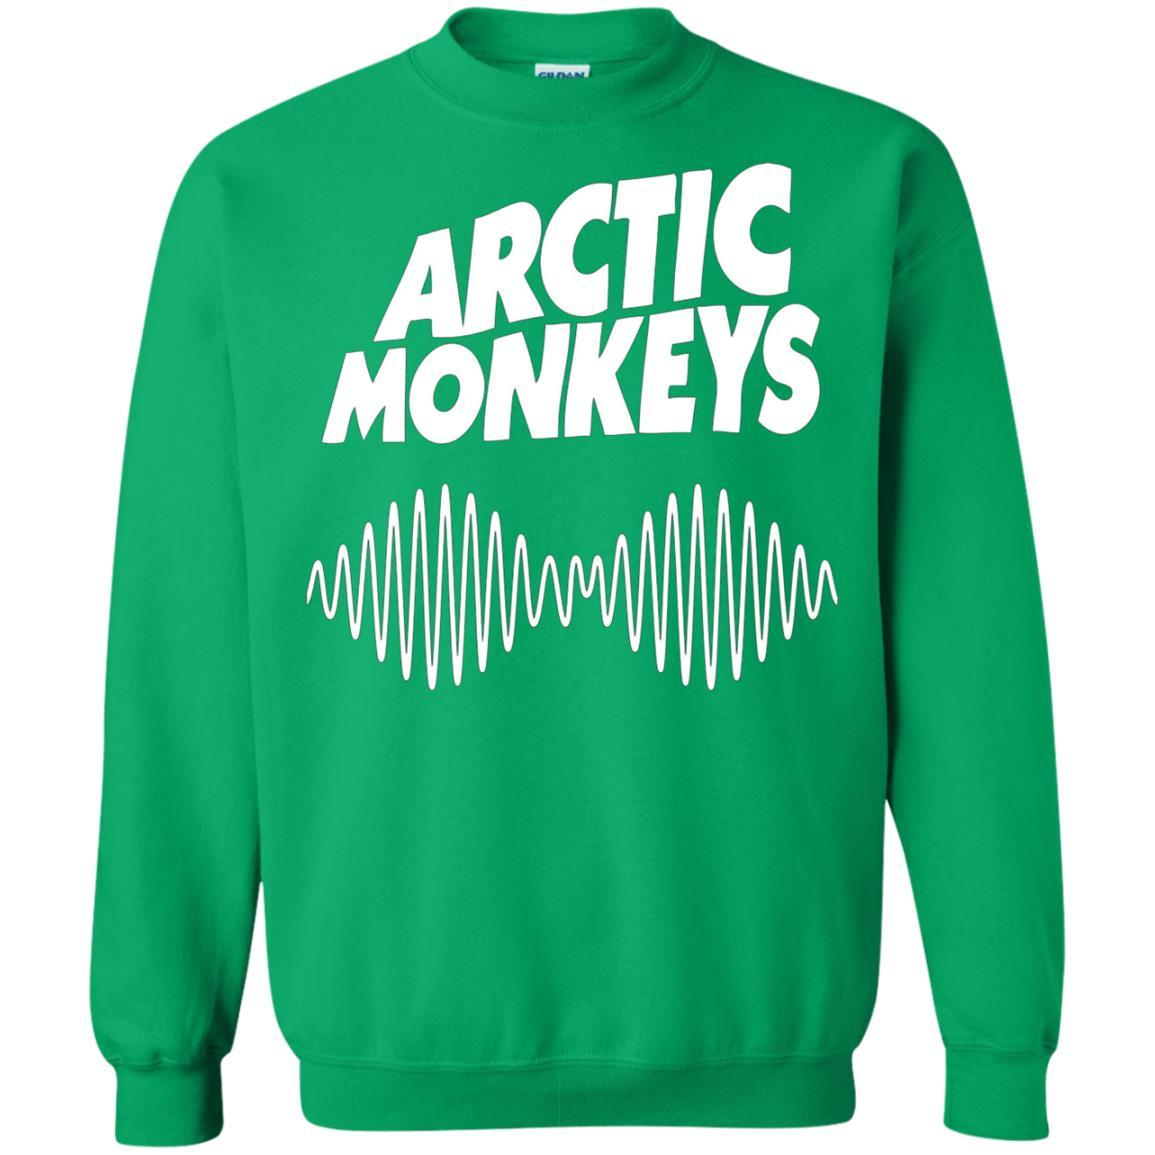 Artic Monkeys Soundwave Music Band Tshirt Irish Green / 5XL